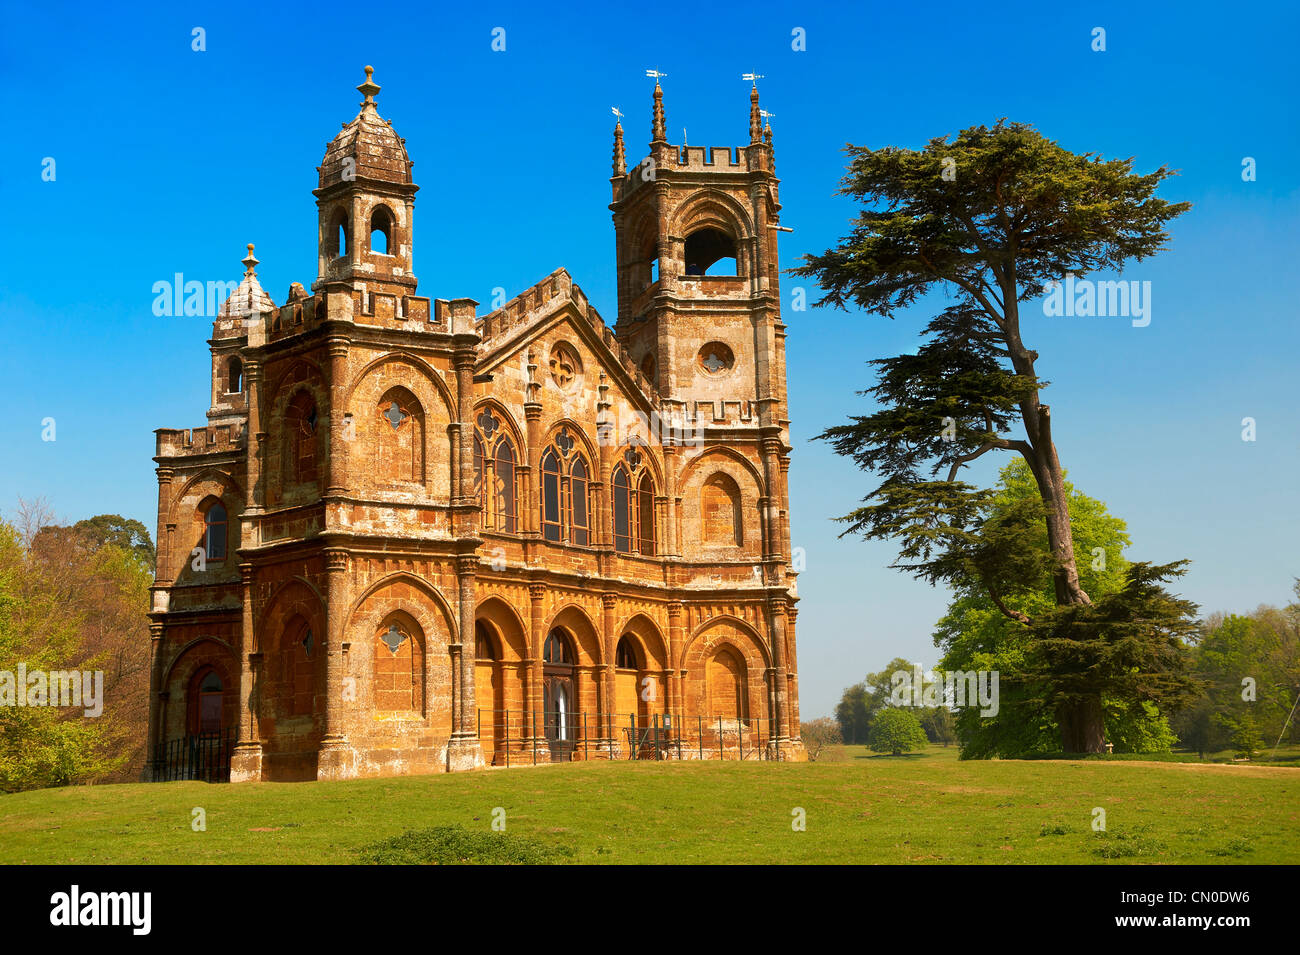 The Gothic Temple of Stowe House in the formal gardens of the English stately home of the Duke of Buckingham - Stock Image